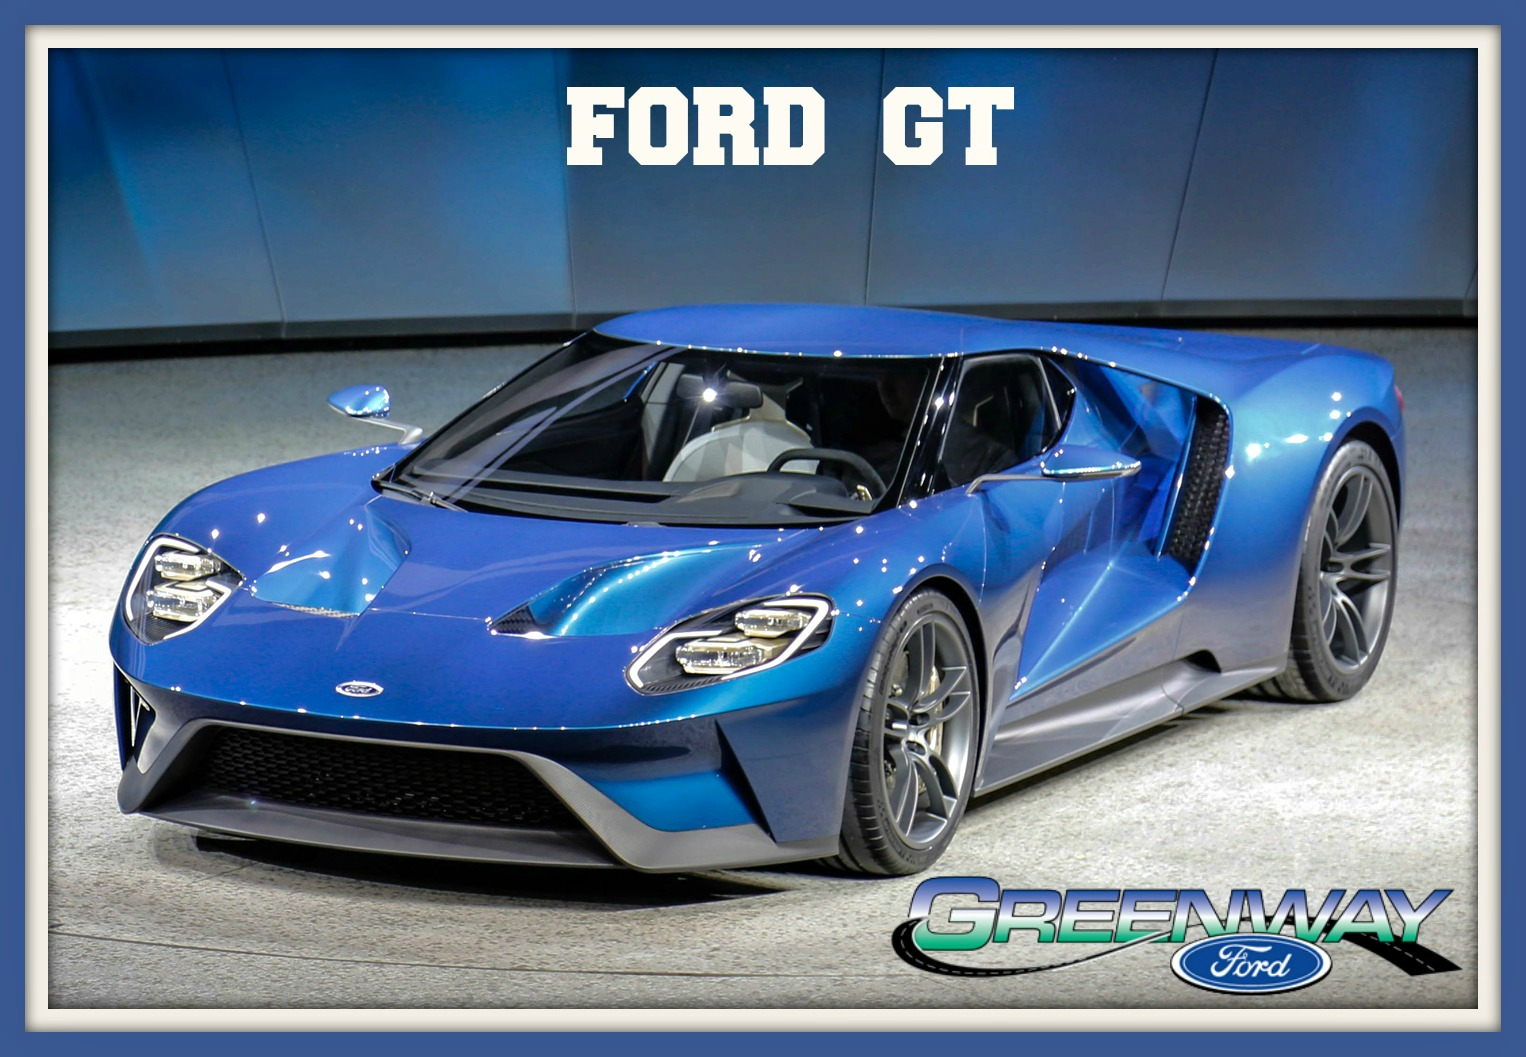 Ford Gt Every Ford Owners Dream Car